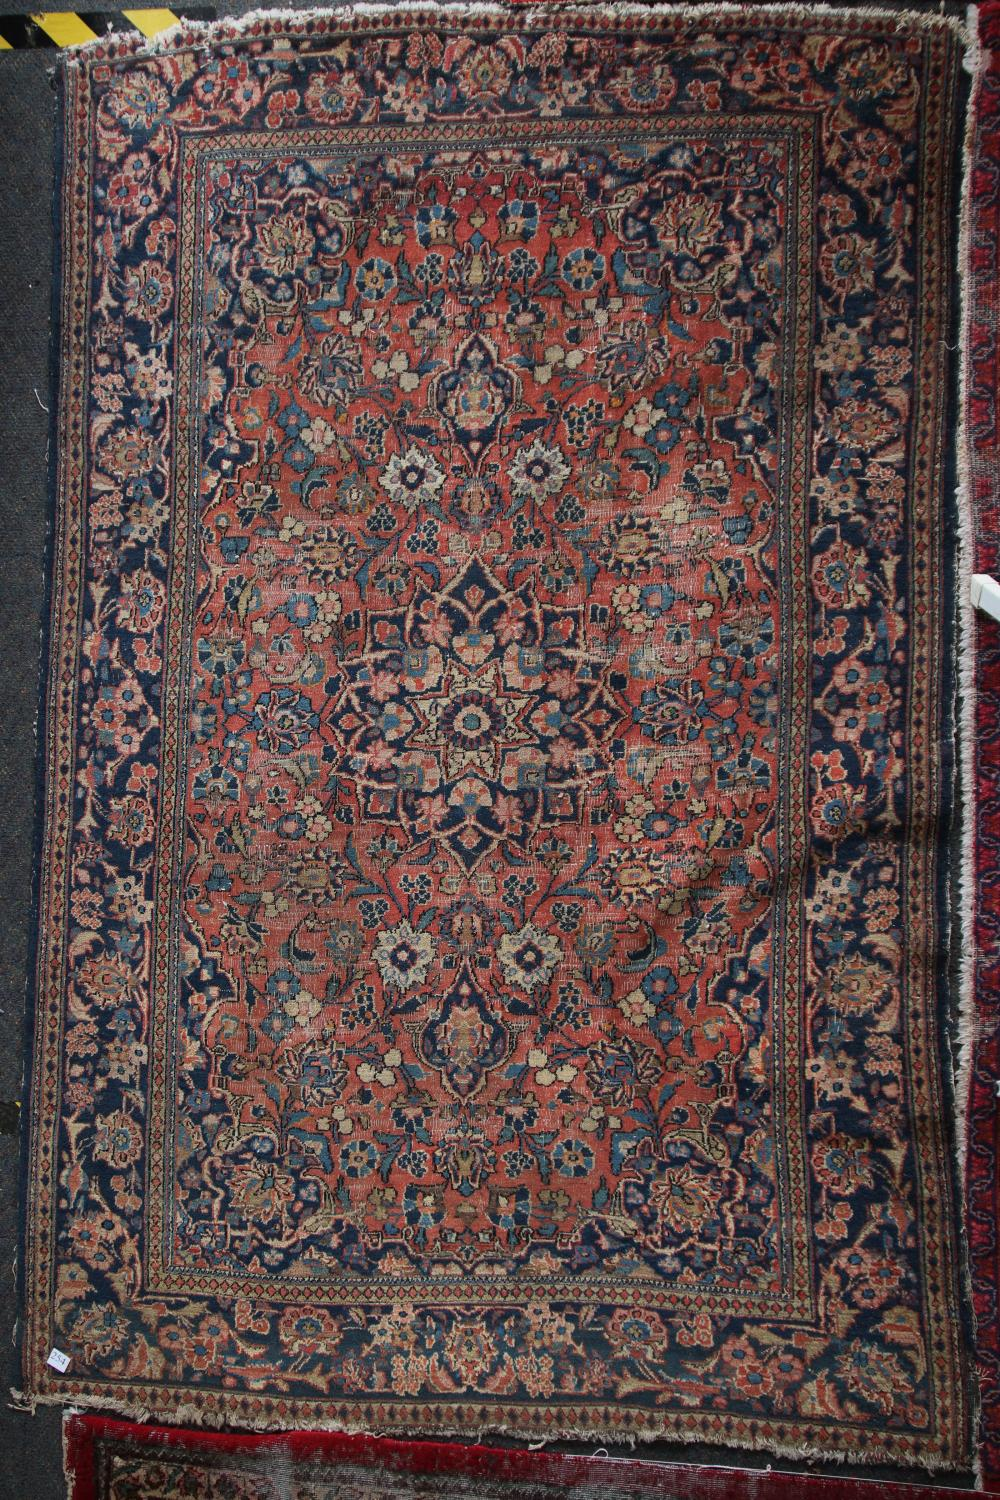 ANTIQUE PERSIAN HAND KNOTTED WOOL FLOOR RUG, PEACH, CREAM AND BLUE MEDALLION AND BORDER PATTERN, MEASURES 126CM X 200CM (WEAR AND FRAYED EDGES)